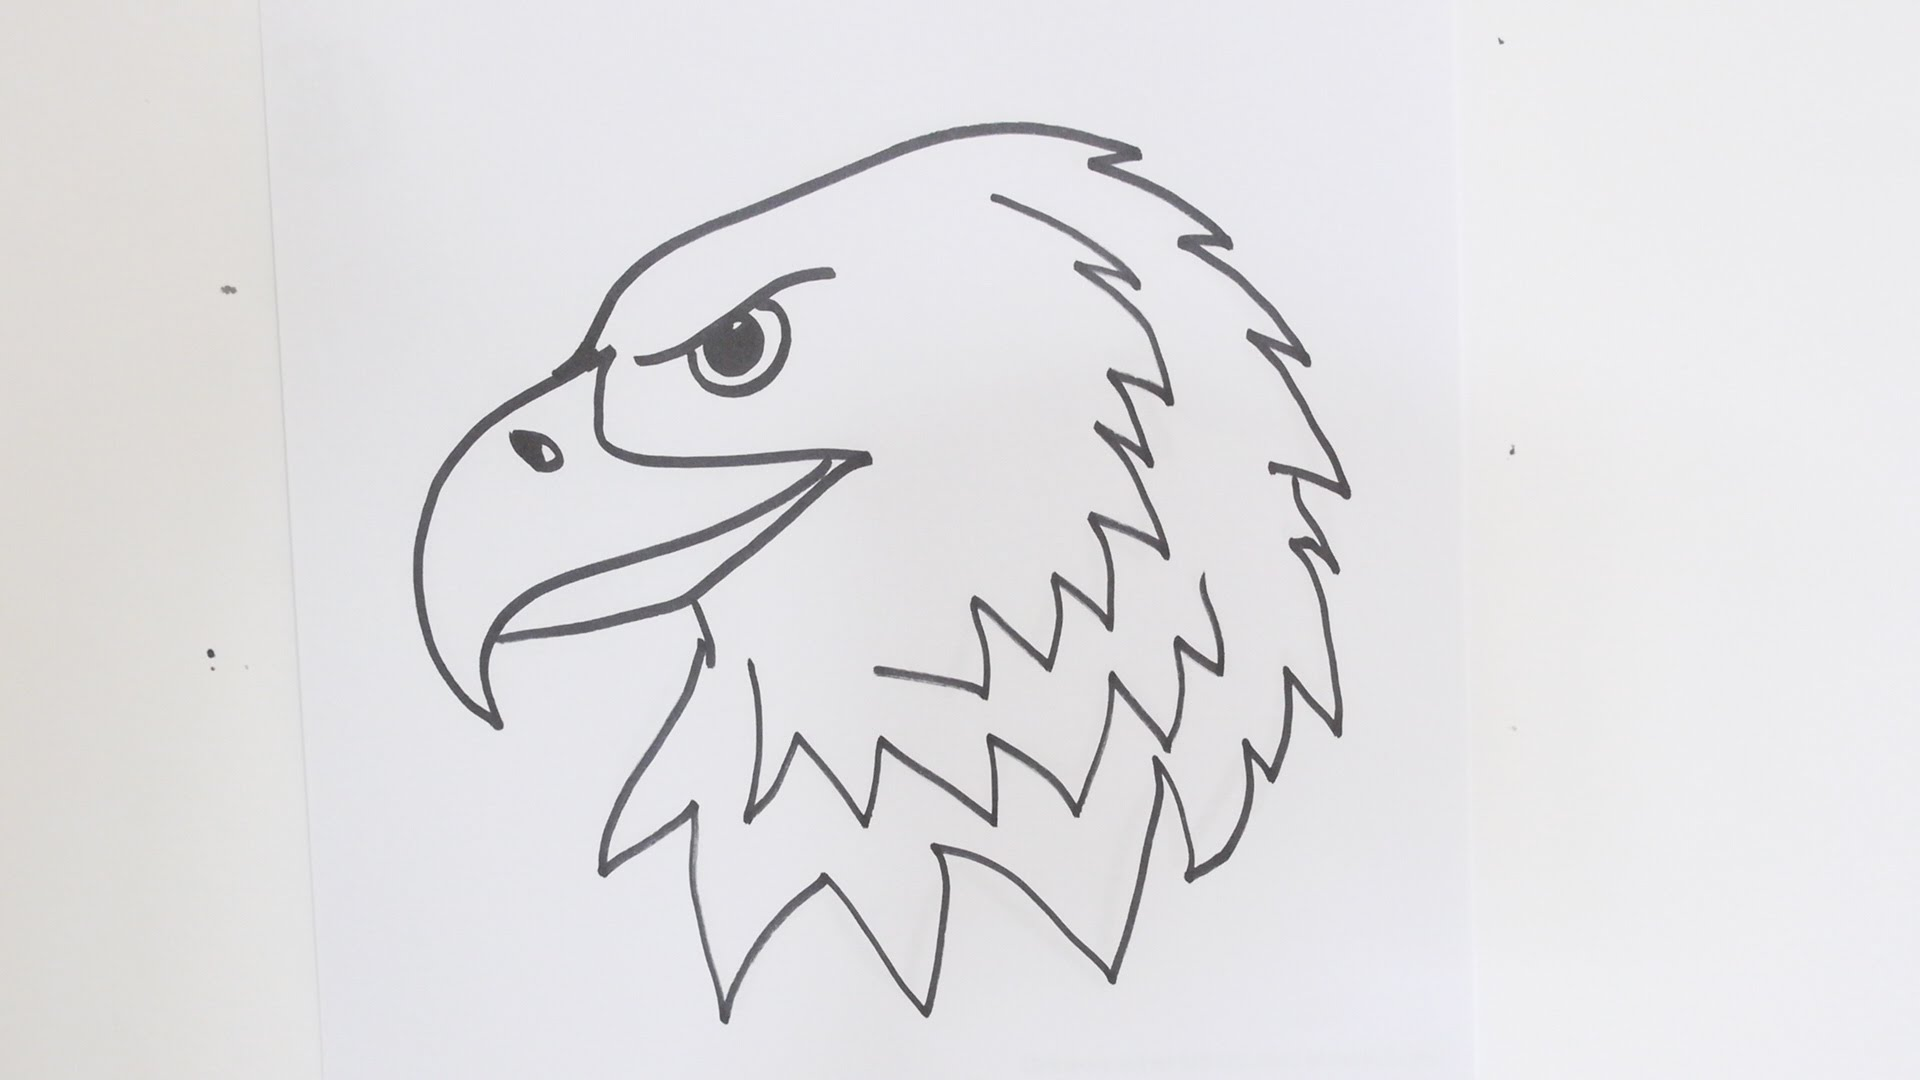 How To Draw An Eagle Head Step By Step Easy Video Tutorial